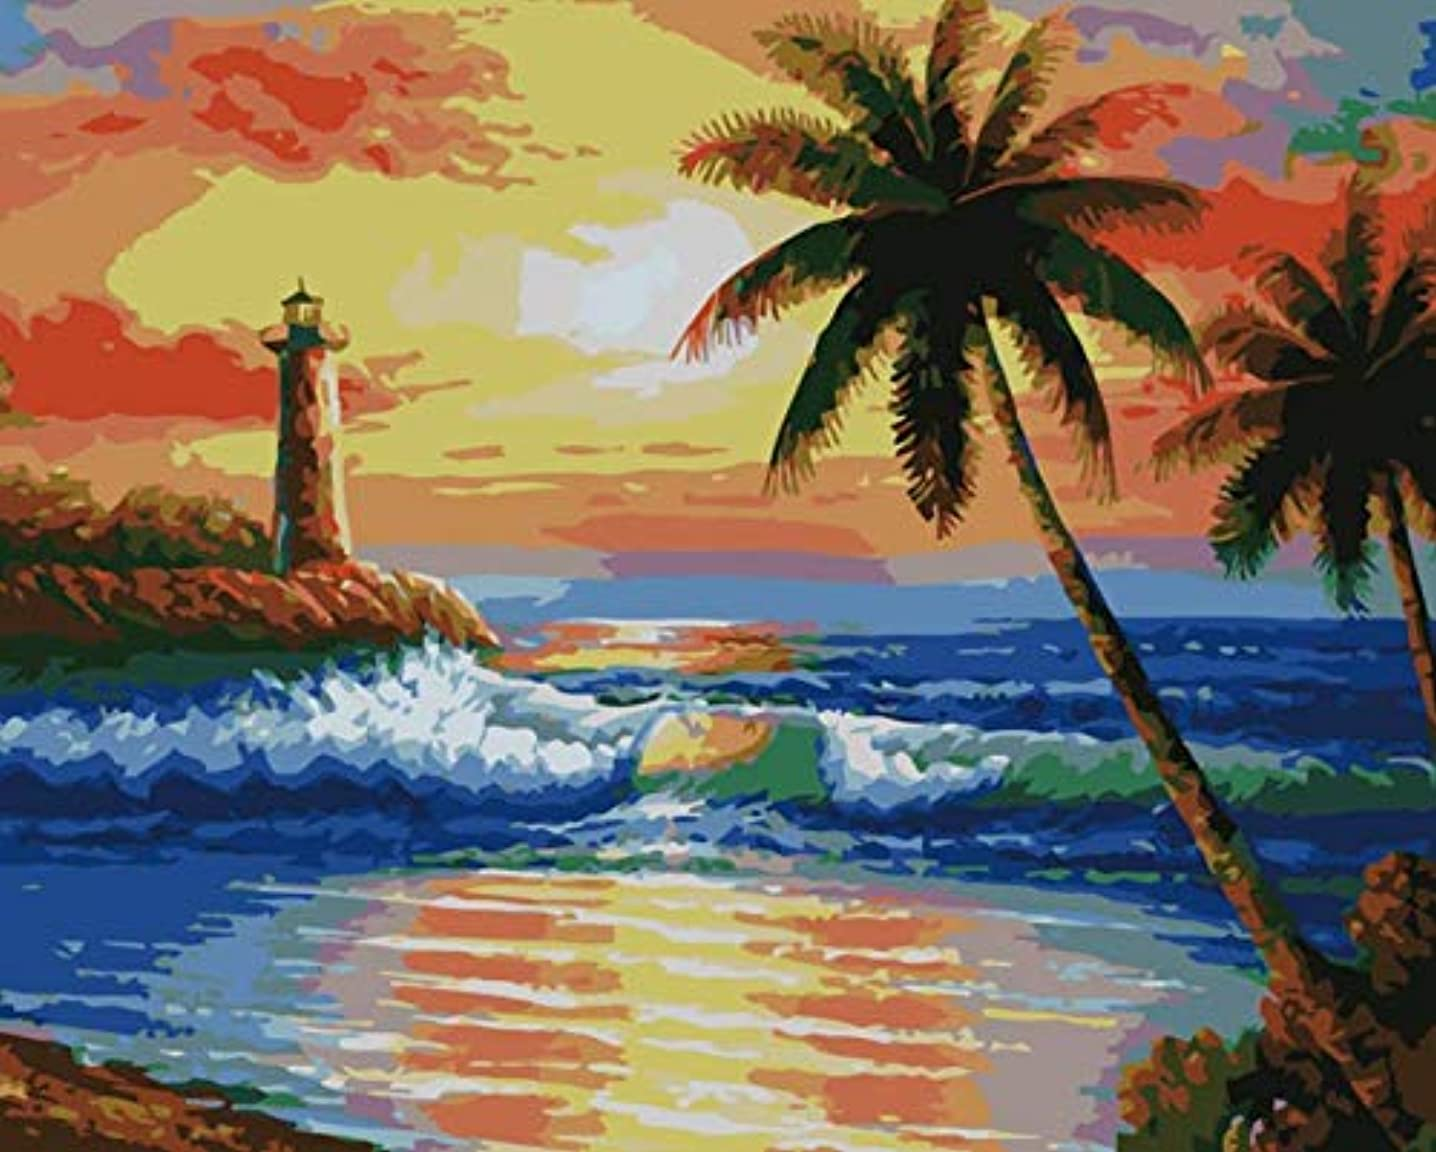 SuperDecor DIY Oil Painting Paint by Numbers kit for Adults Kids Beginner 16x20 Inch (Sunset 2)